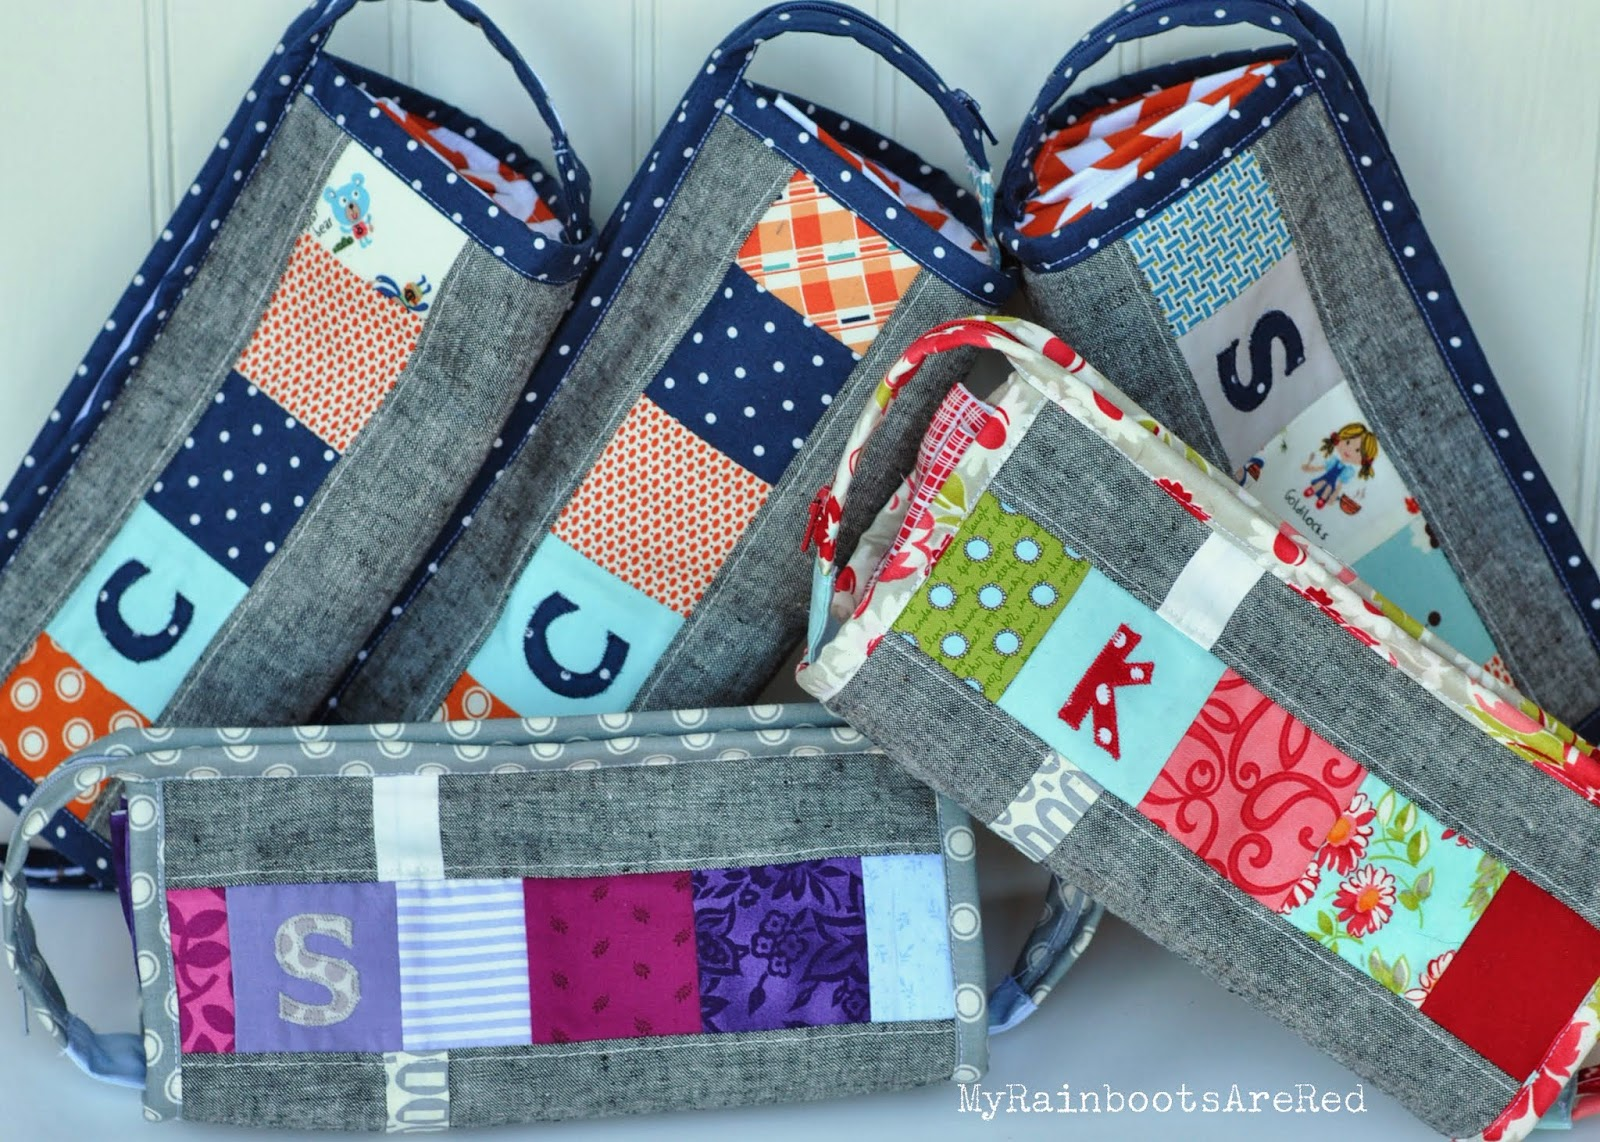 http://myrainbootsarered.blogspot.com/2014/01/sew-together-bags.html